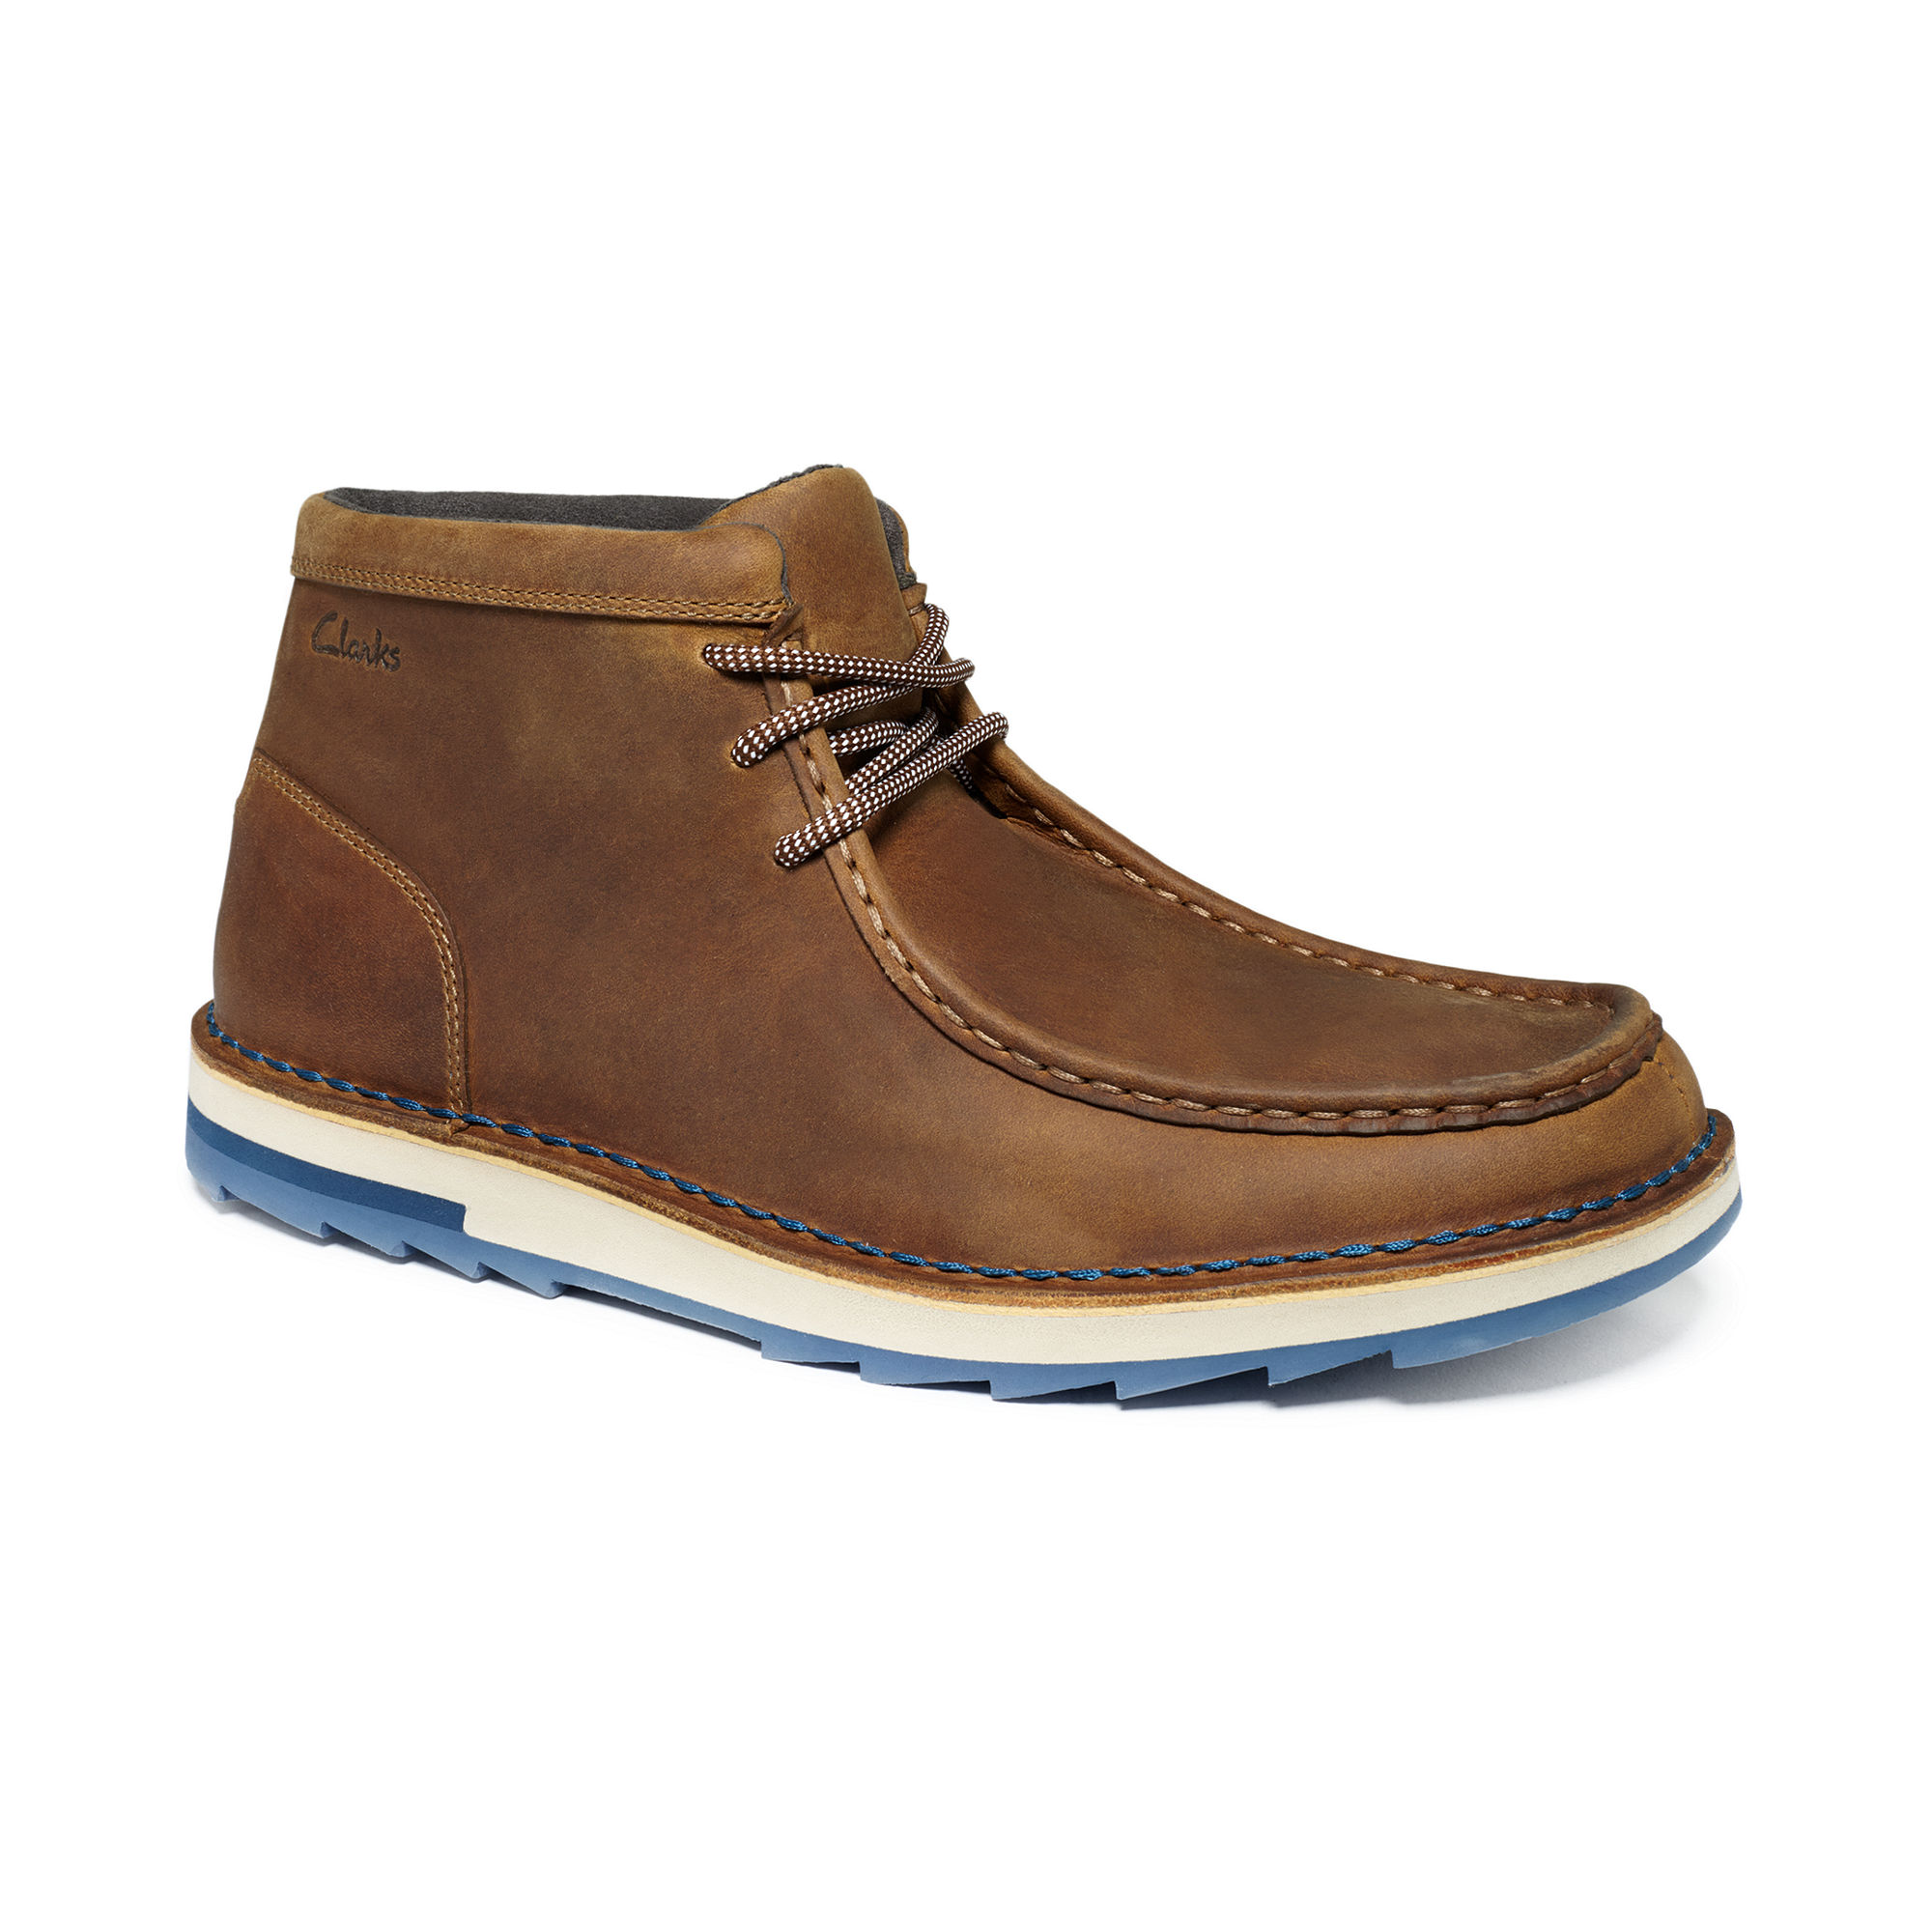 Womens Leather Chukka Shoes